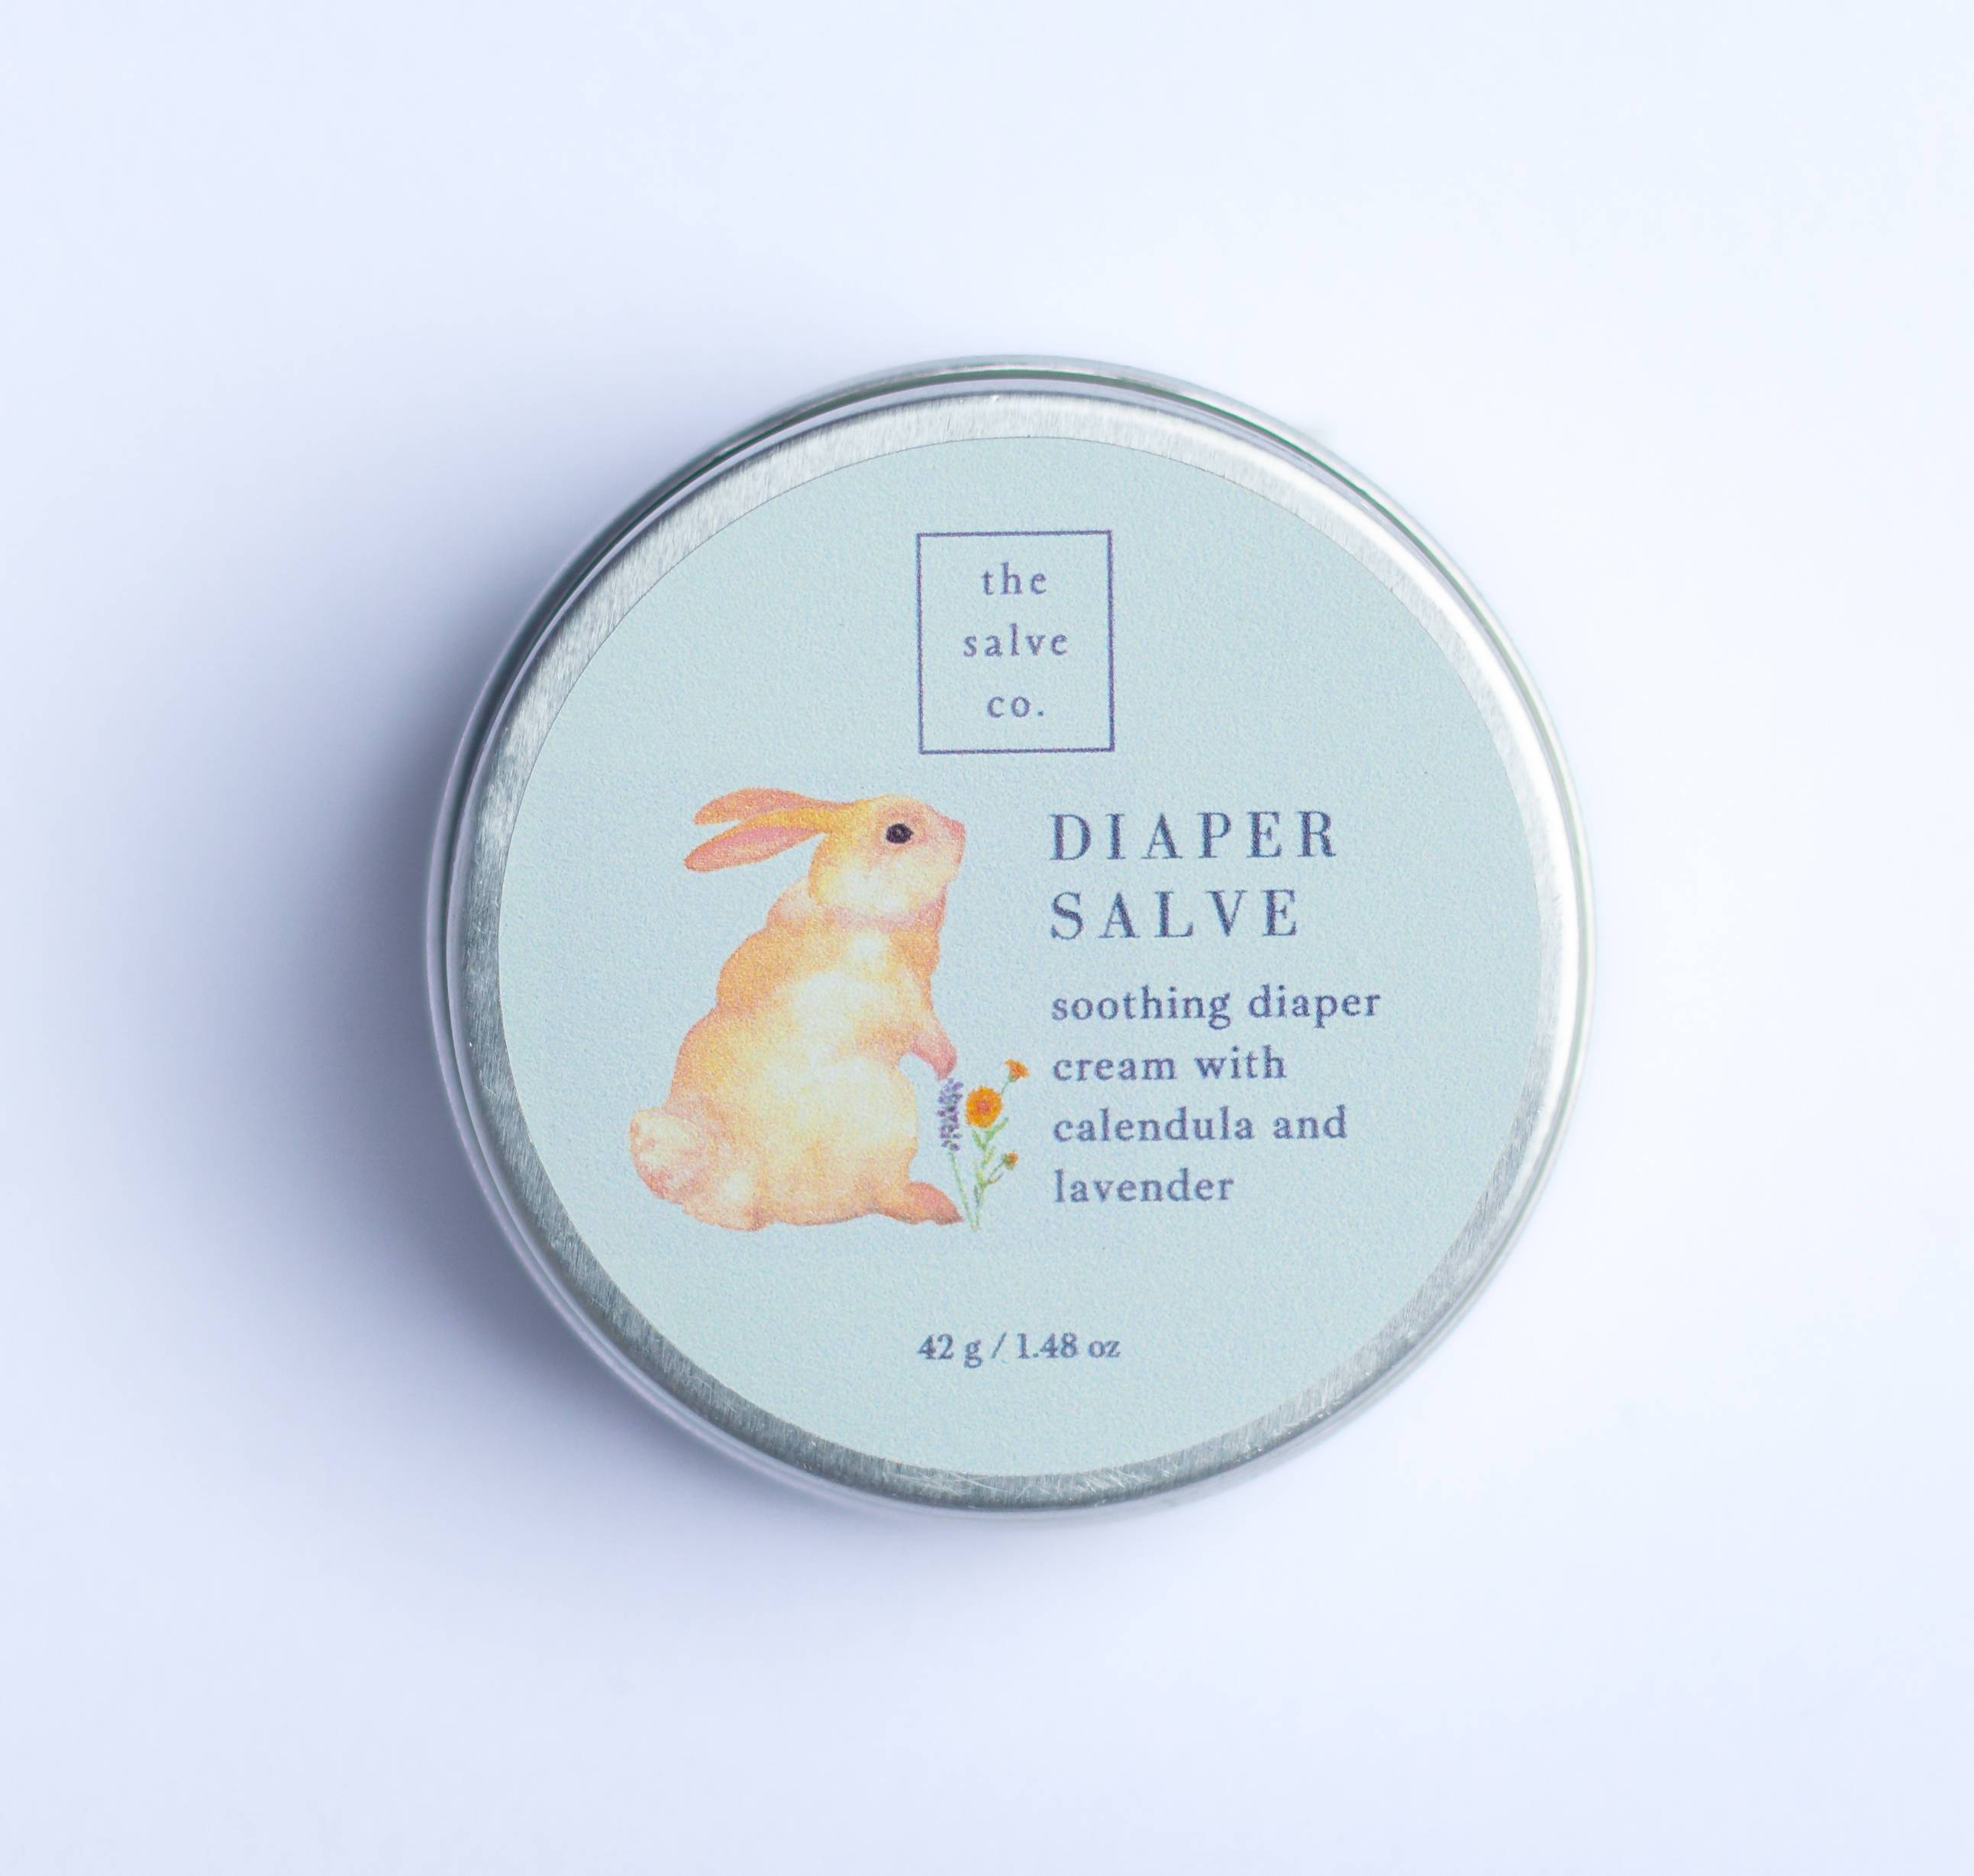 Mummy + Baby Bundle by the Salve Co. - Mummy Gift Sets - The Salve Co. - Naiise